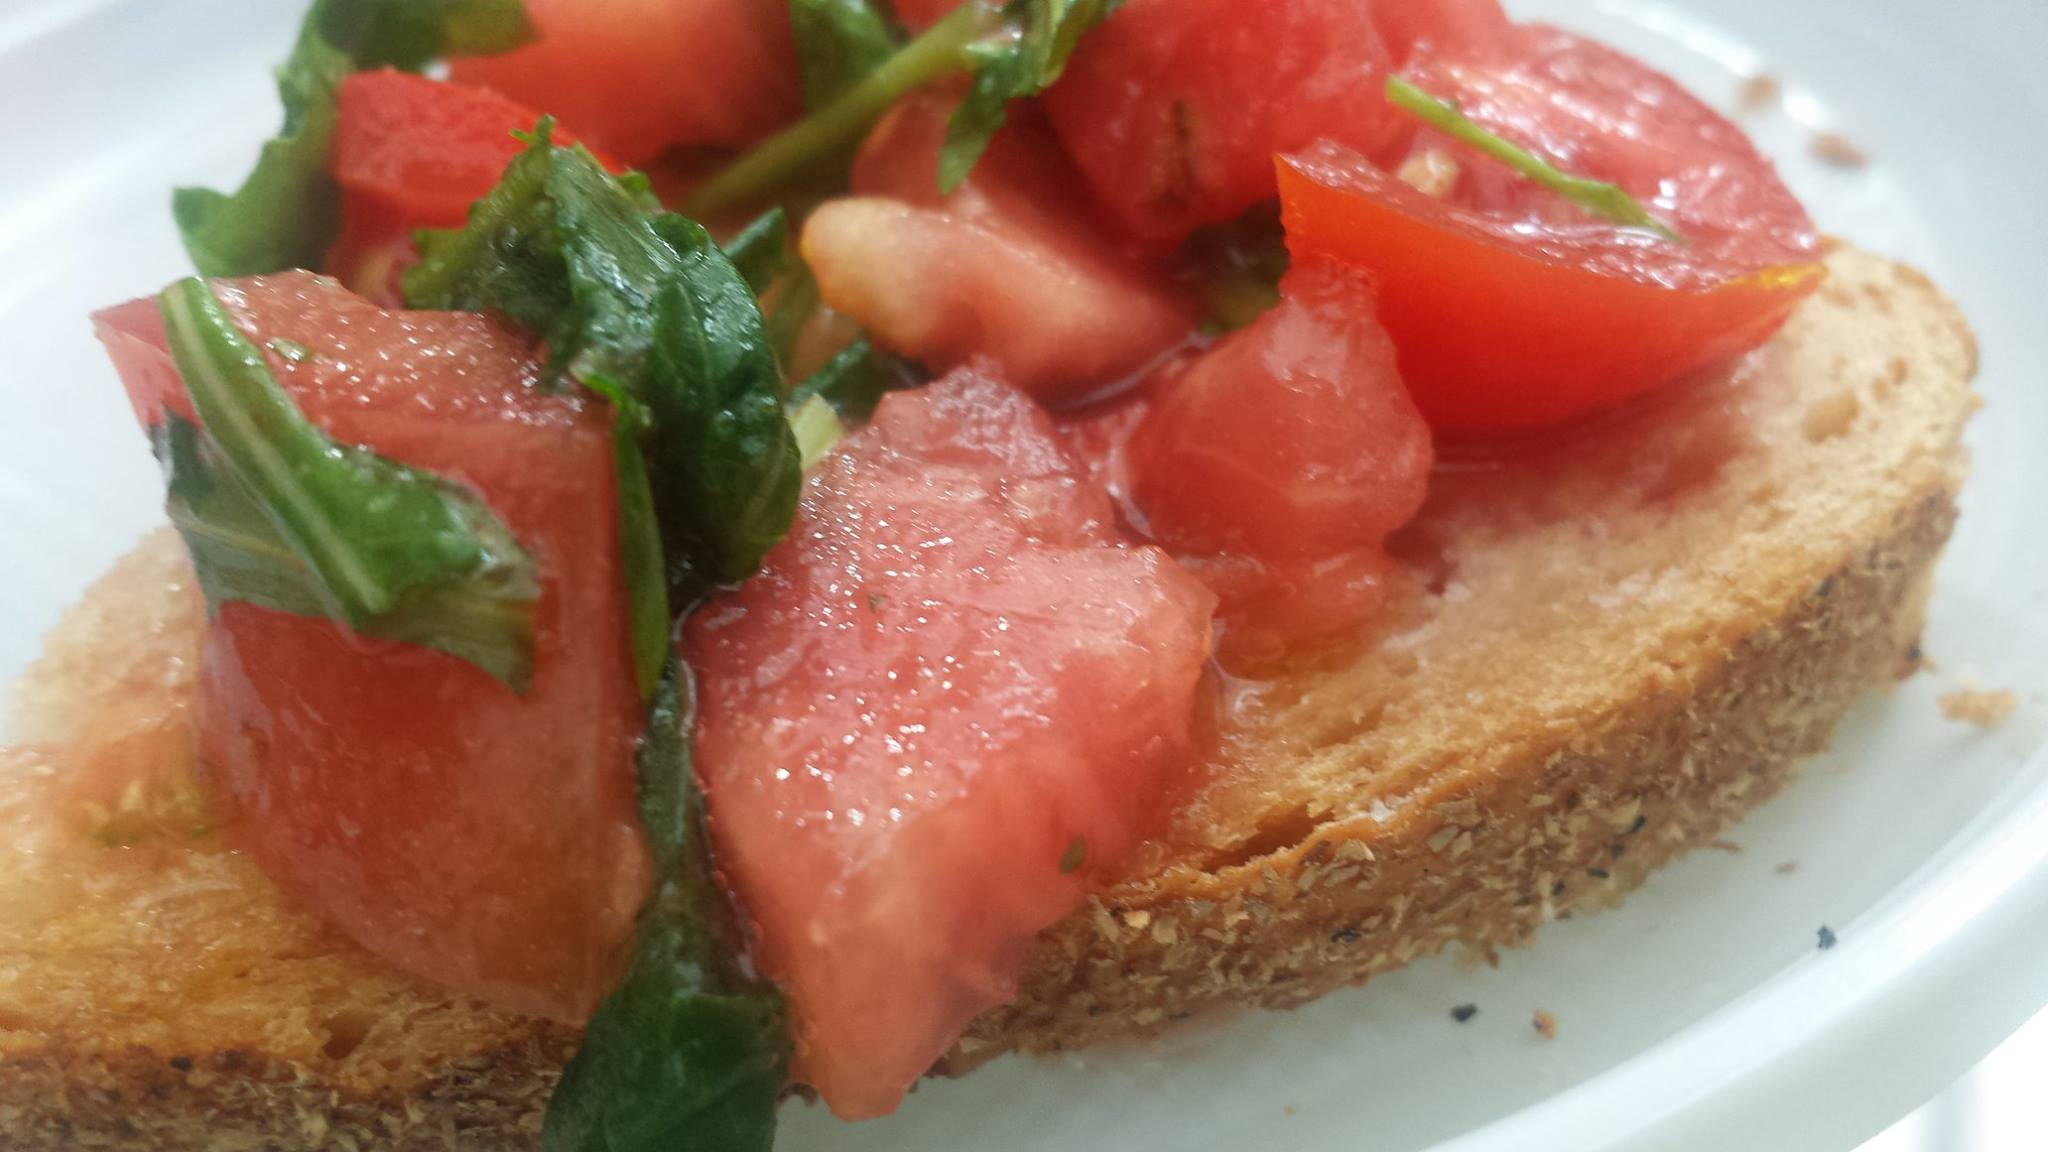 We made ... and ate the best bruschetta in the world. Why can't our tomatoes taste like this?